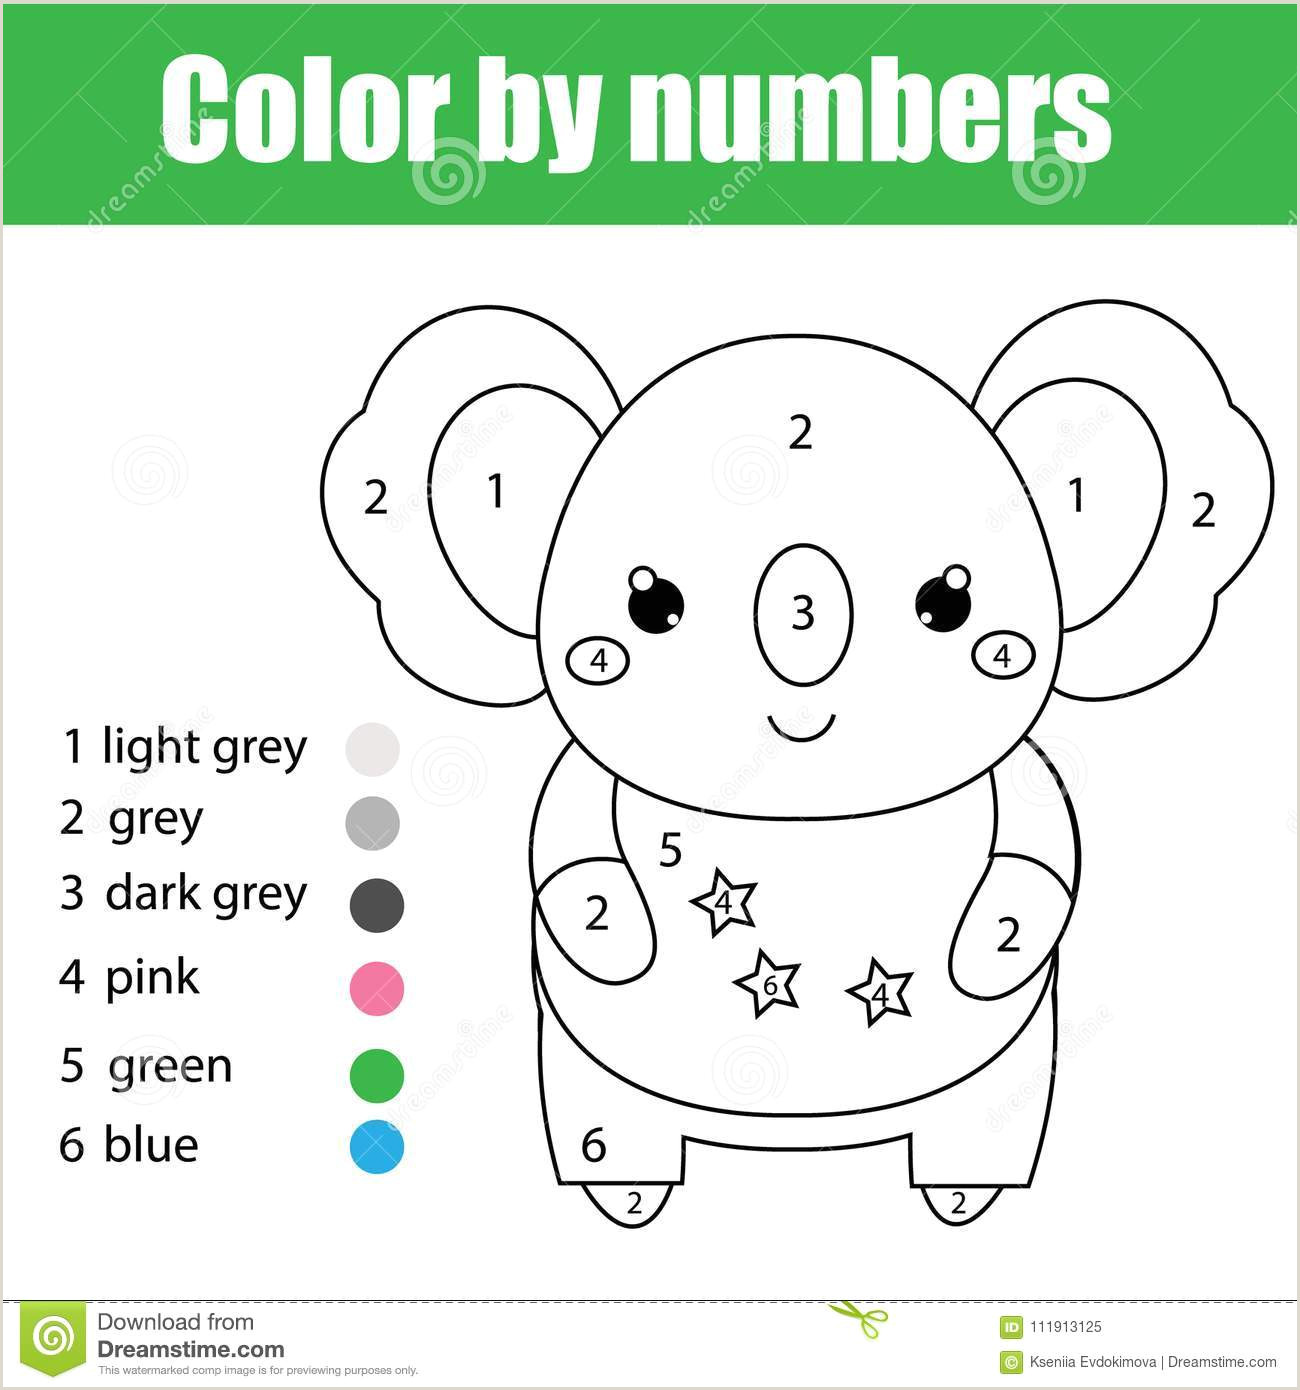 Basic Color by Number Worksheets